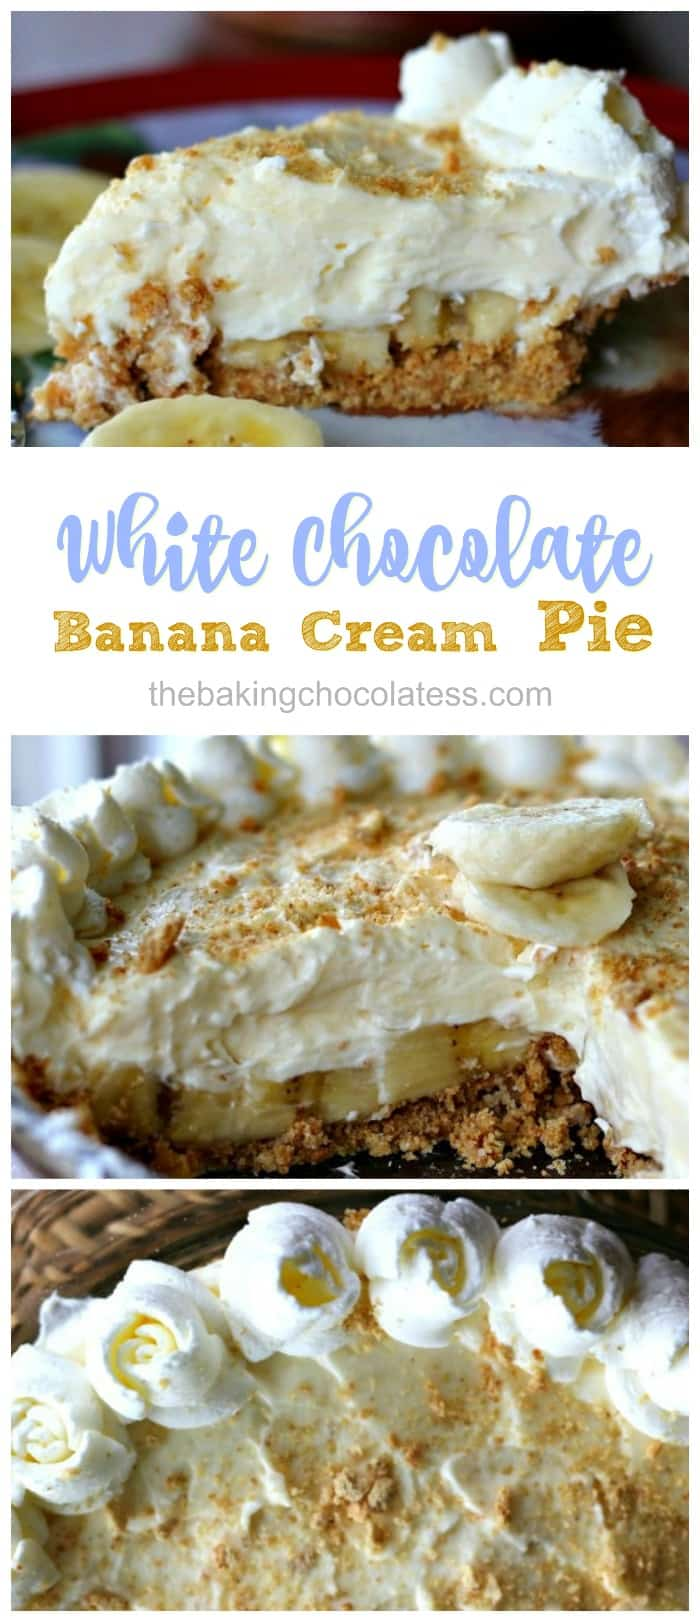 White Chocolate Banana Cream Pie {No-Bake}